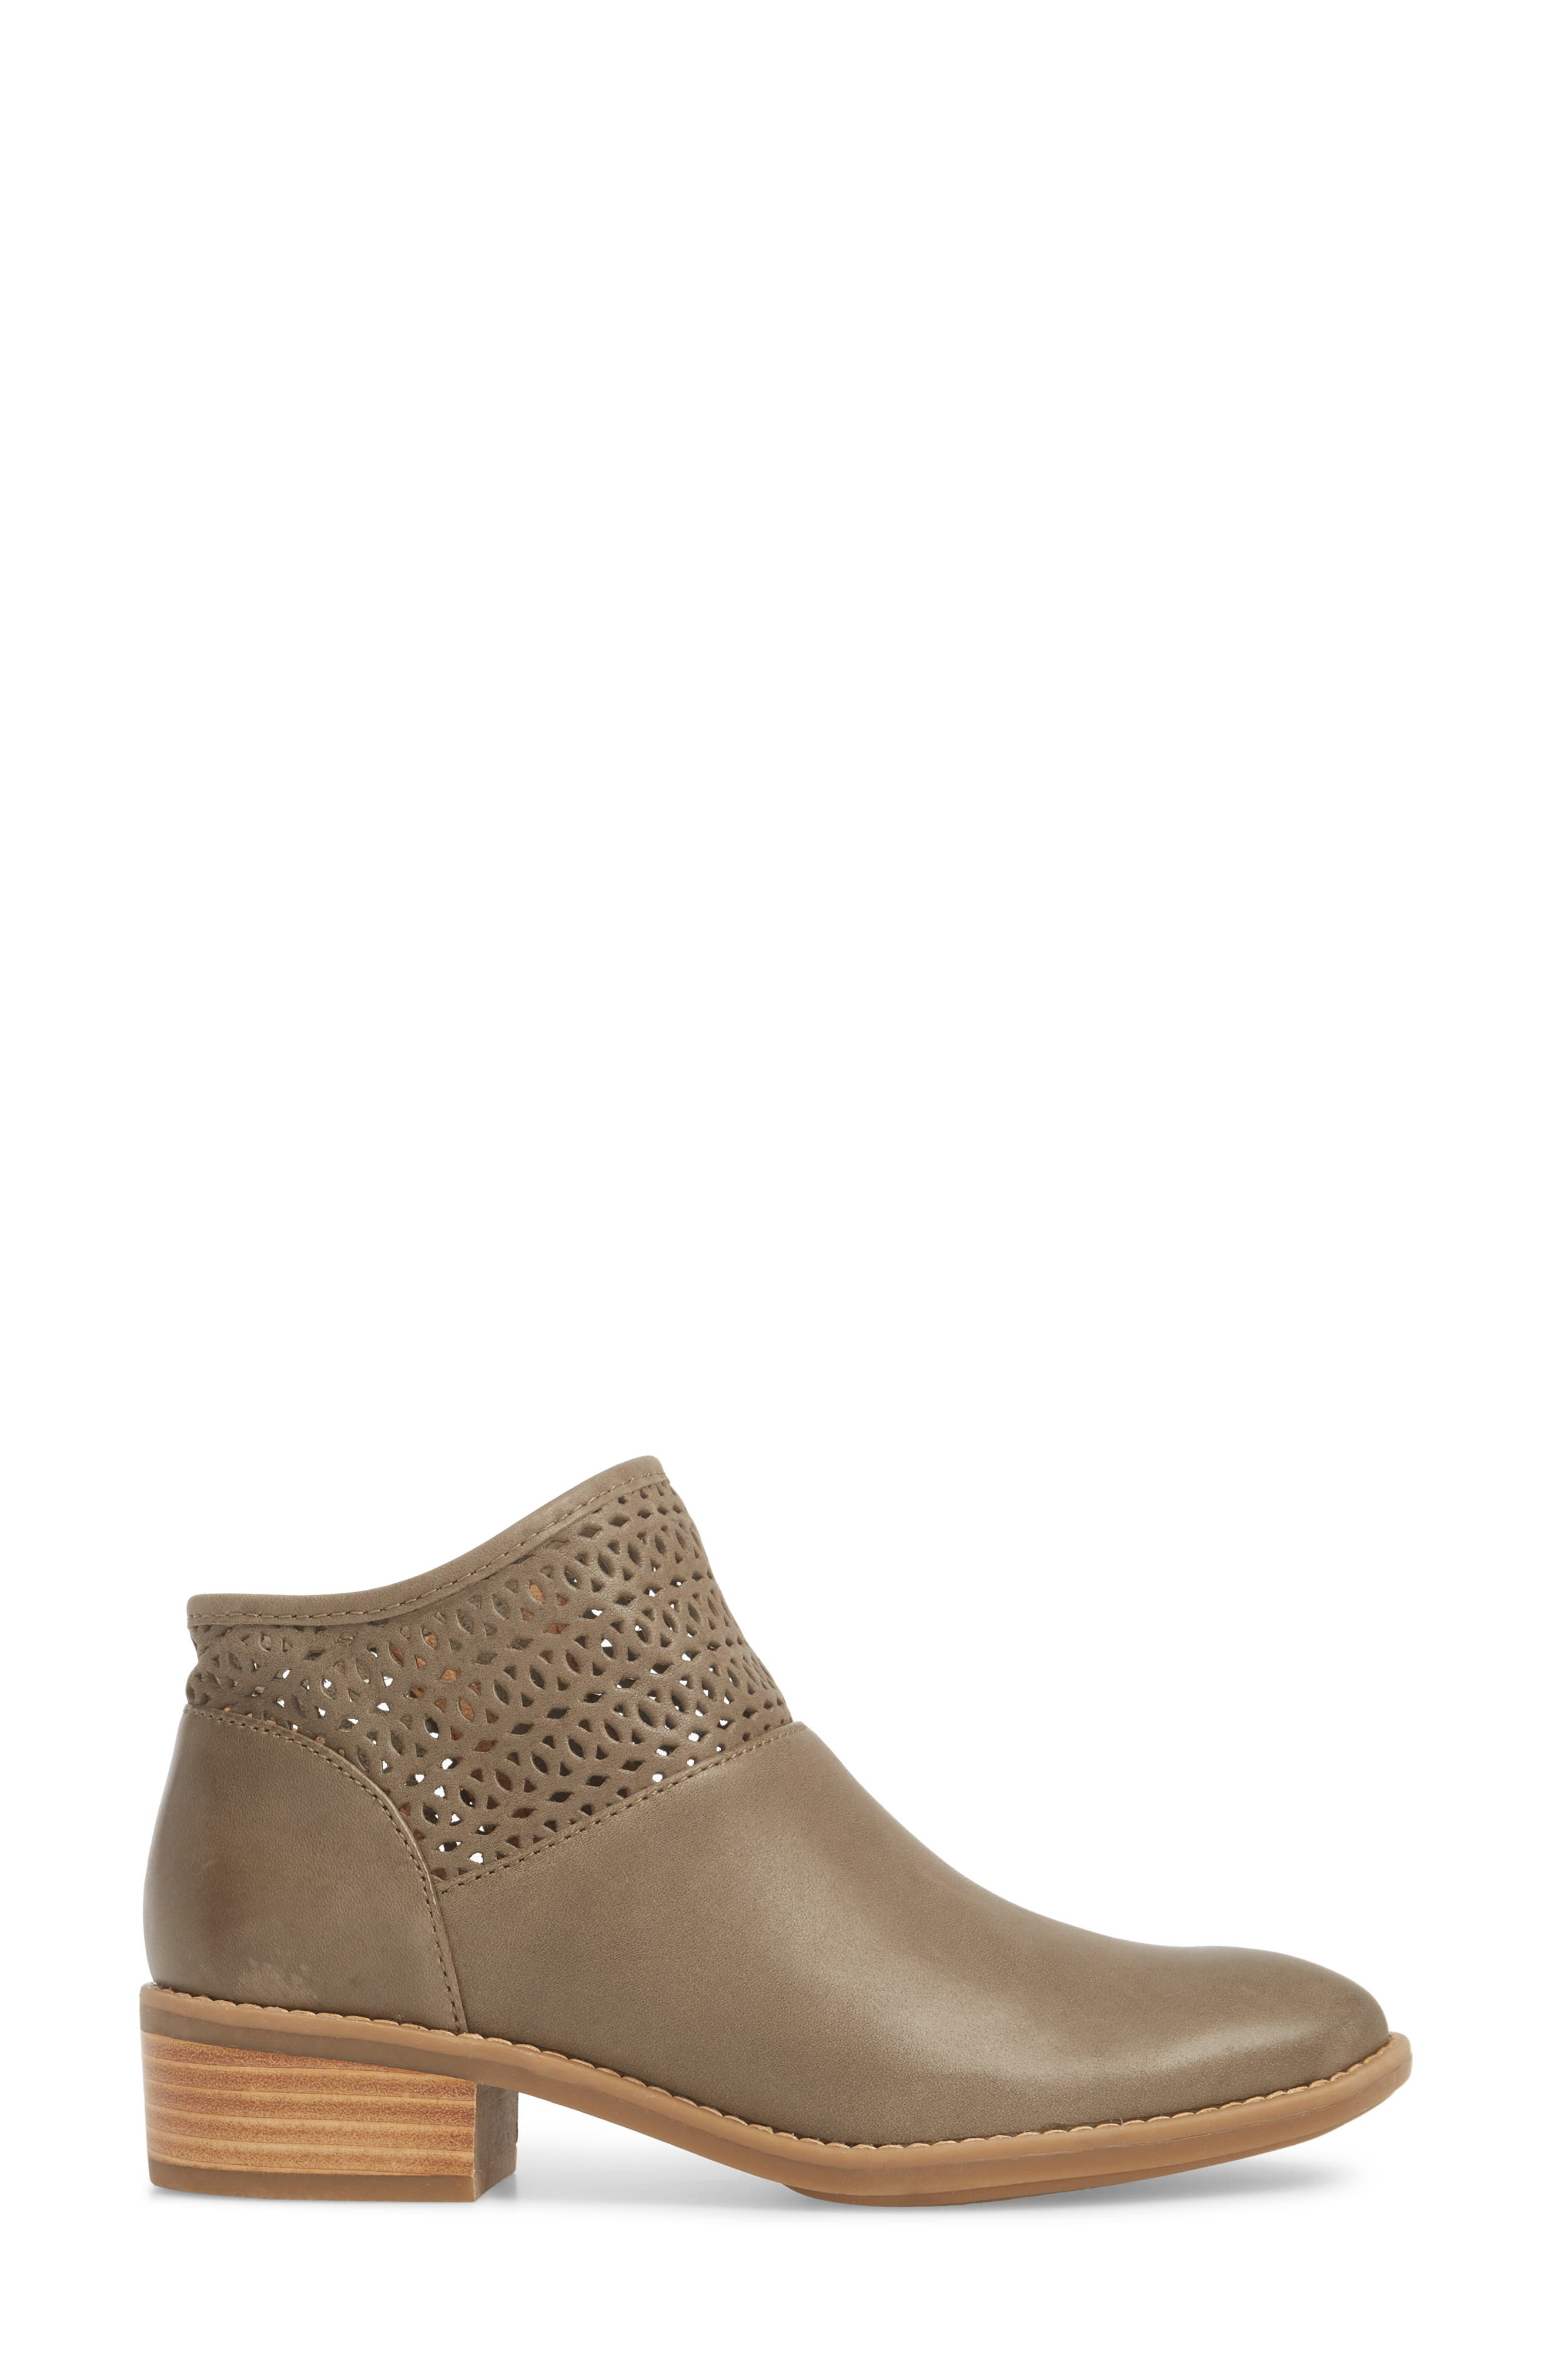 Caileen Bootie,                             Alternate thumbnail 3, color,                             Pale Olive